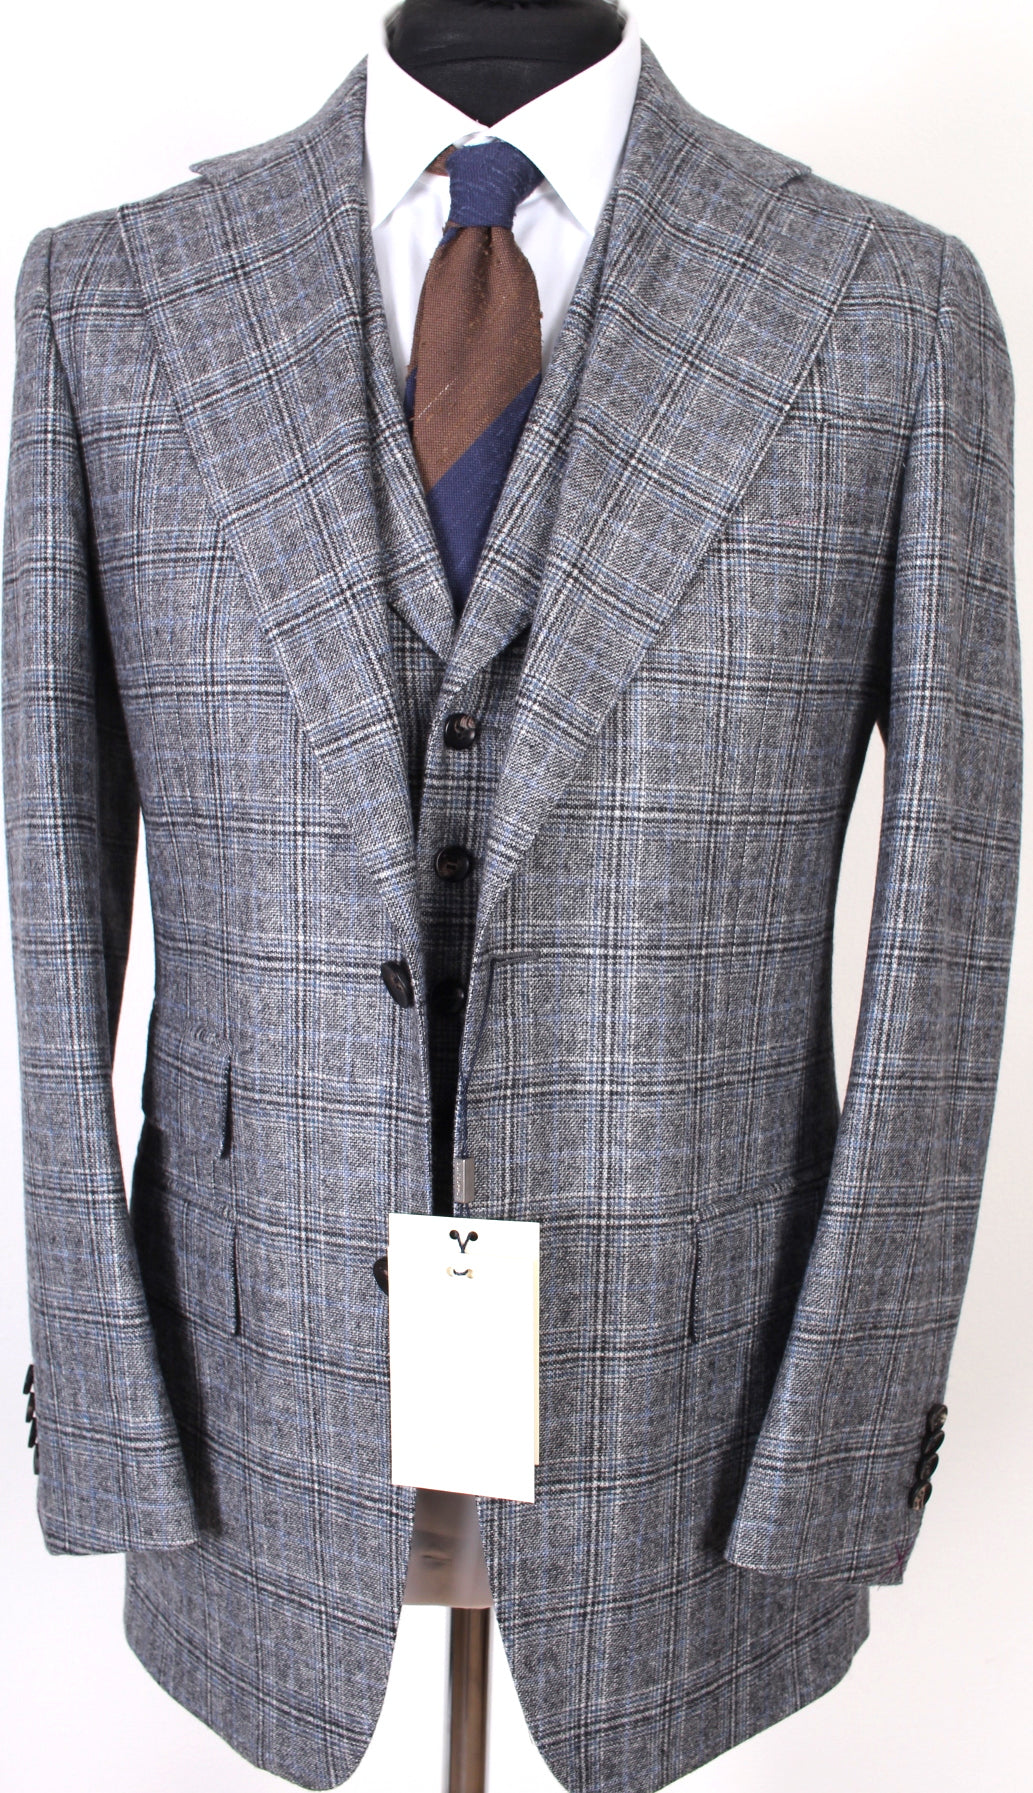 New Suitsupply Havana Gray Check Wide Lapel Wool/Cashmere 3 Piece Suit - Size 40R